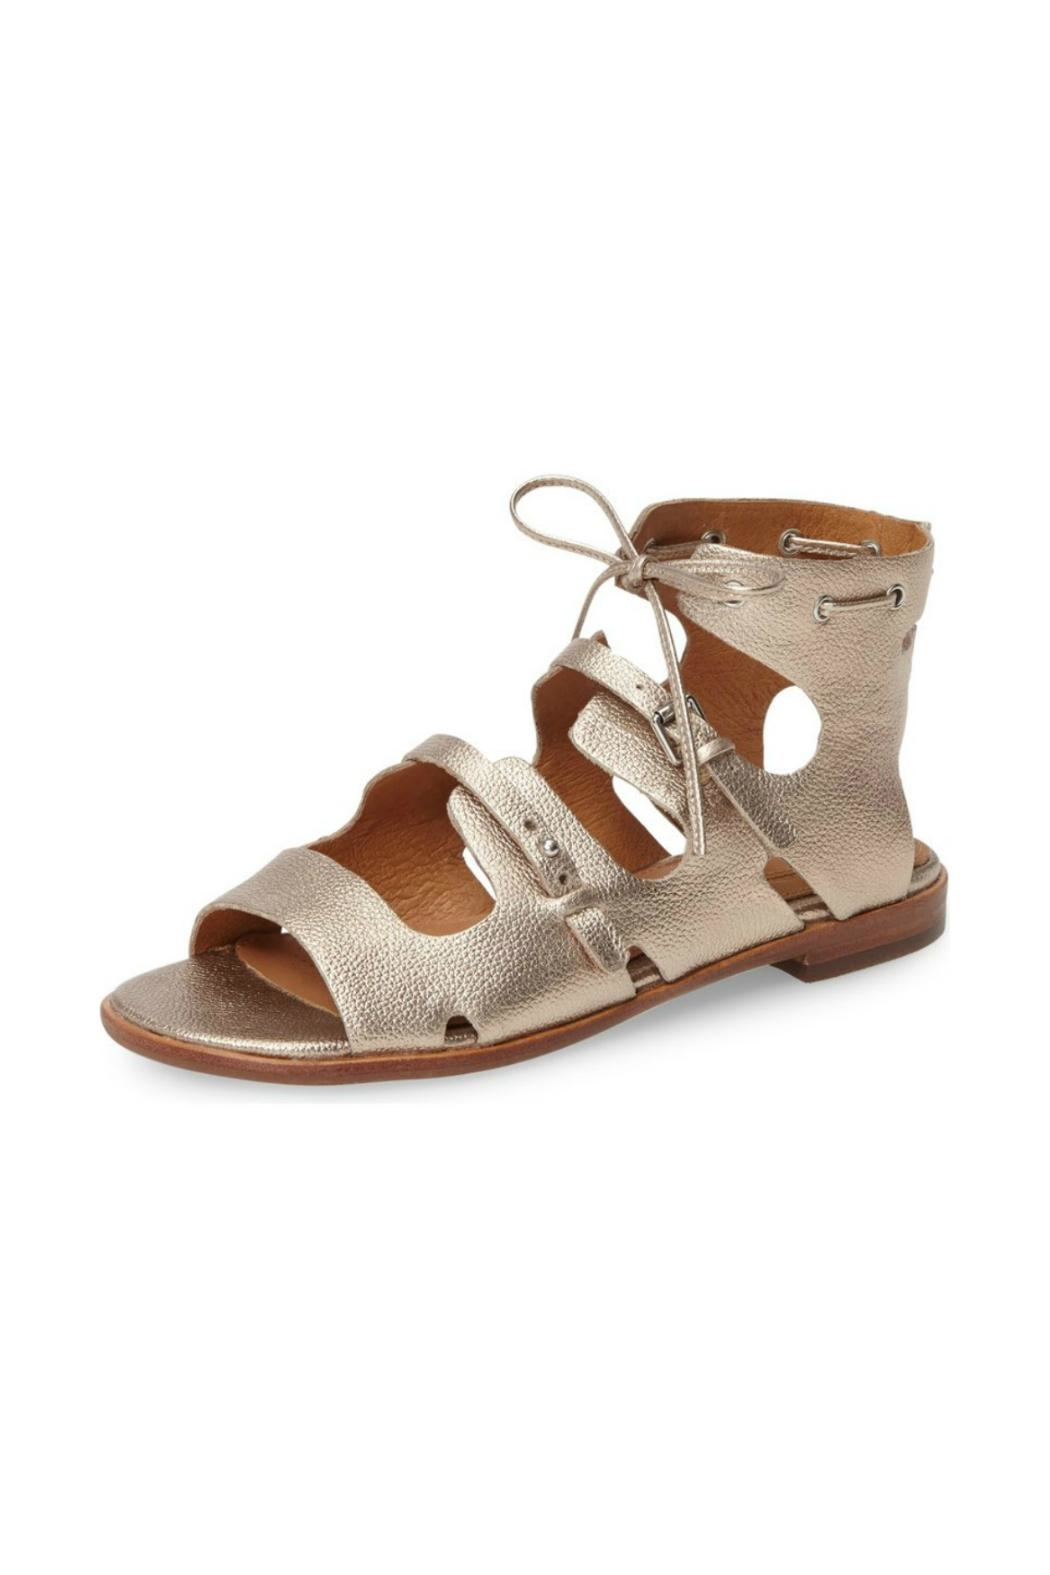 Corso Como Champagne Leather Gladiator Sandal - Front Cropped Image